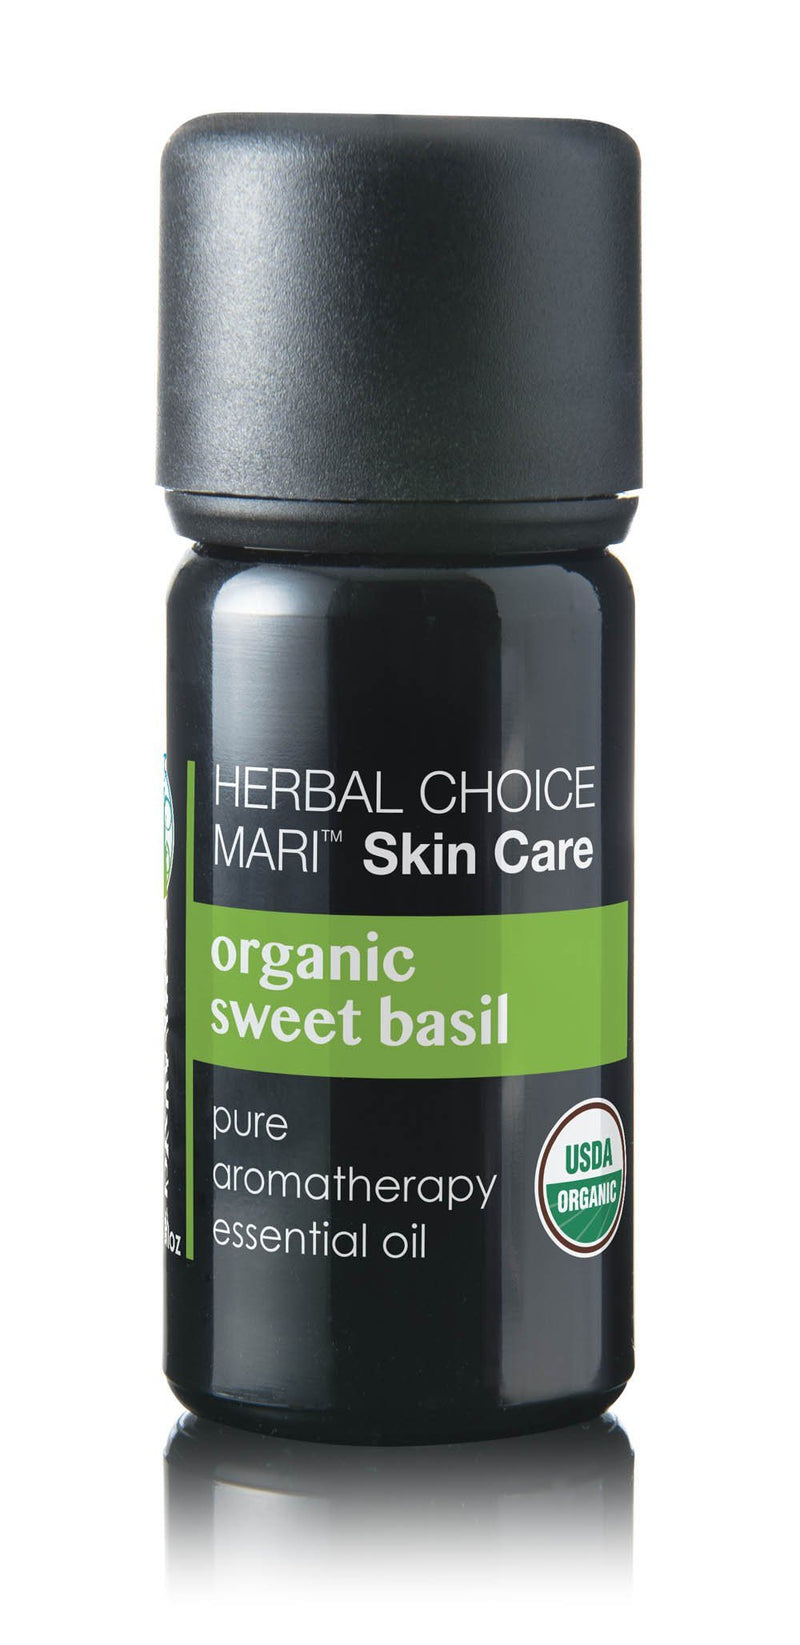 Herbal Choice Mari Organic Sweet Basil Essential Oil; 0.3floz Glass - Herbal Choice Mari Organic Sweet Basil Essential Oil; 0.3floz Glass - Herbal Choice Mari Organic Sweet Basil Essential Oil; 0.3floz Glass